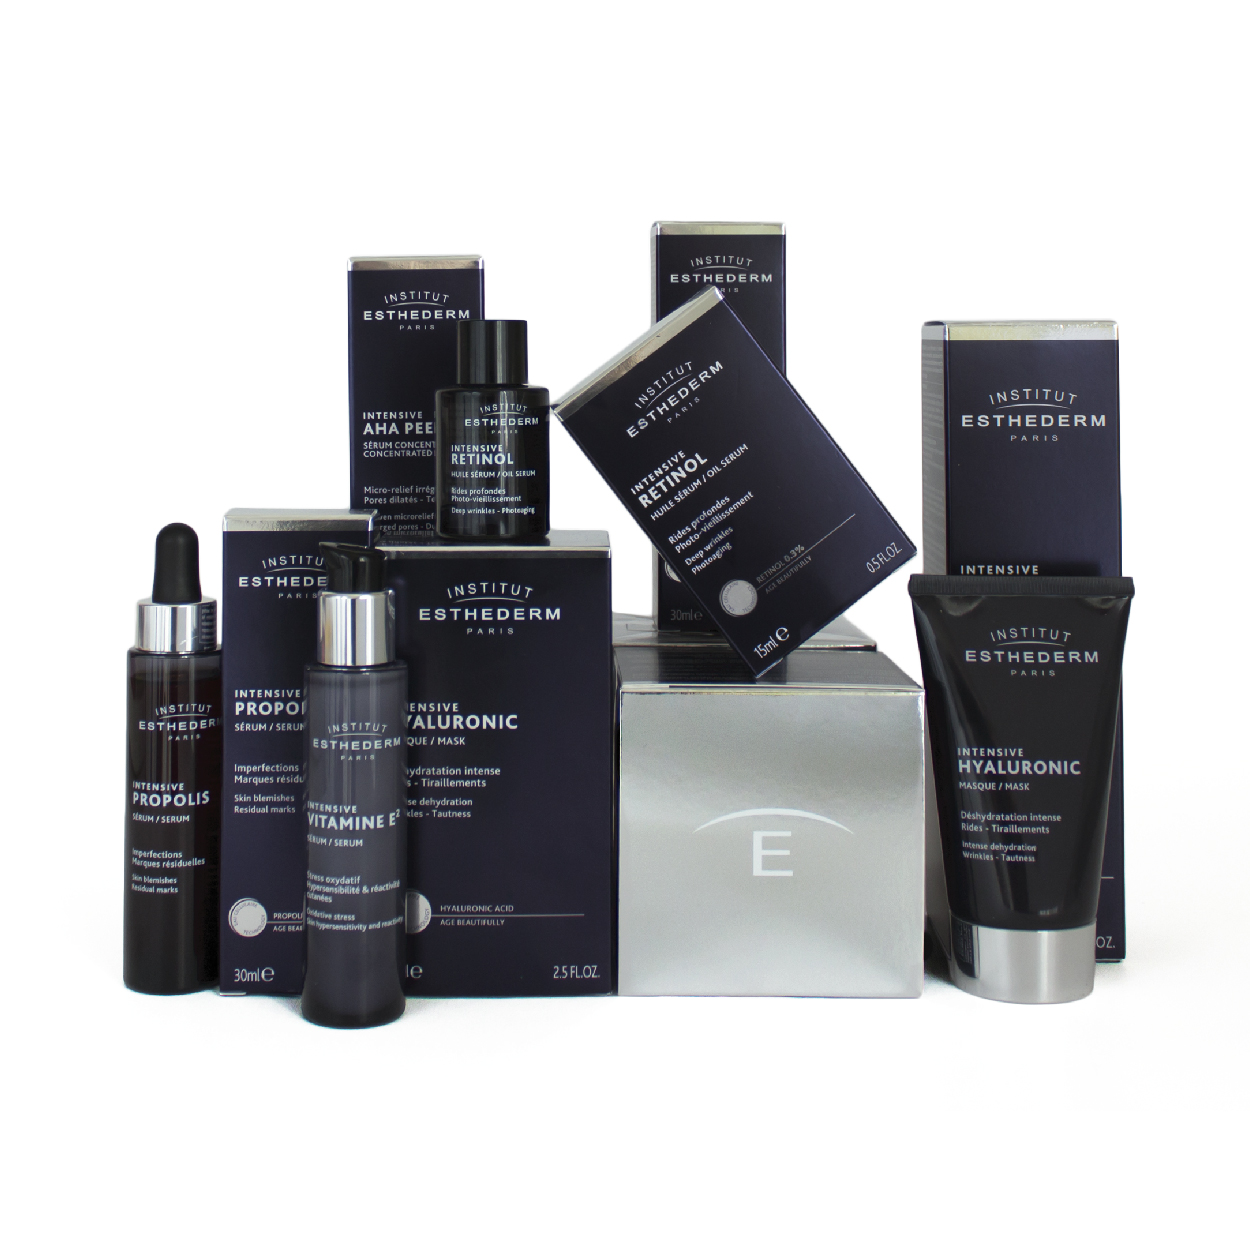 Packaging Branding packaging INTENSIVE ESTHEDERM création 1703 factory